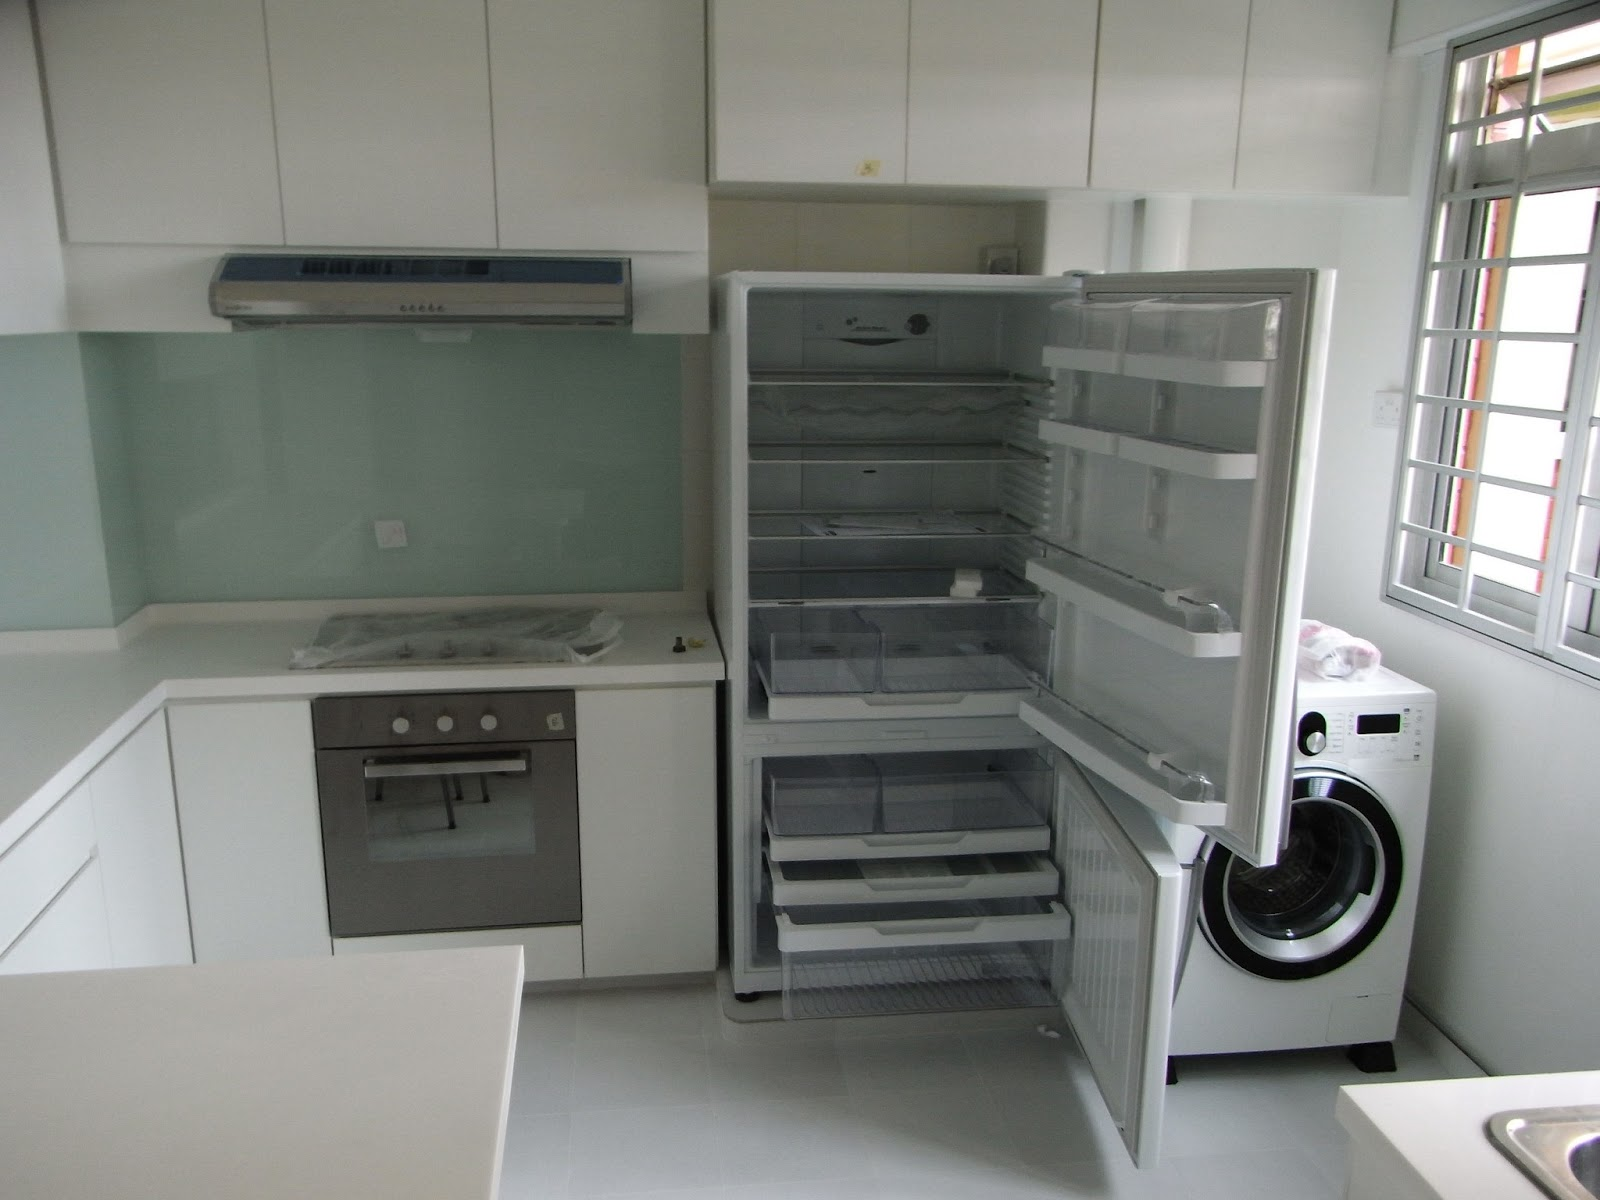 Our HDB Flat Renovation In 2009: Kitchen Design Concepts